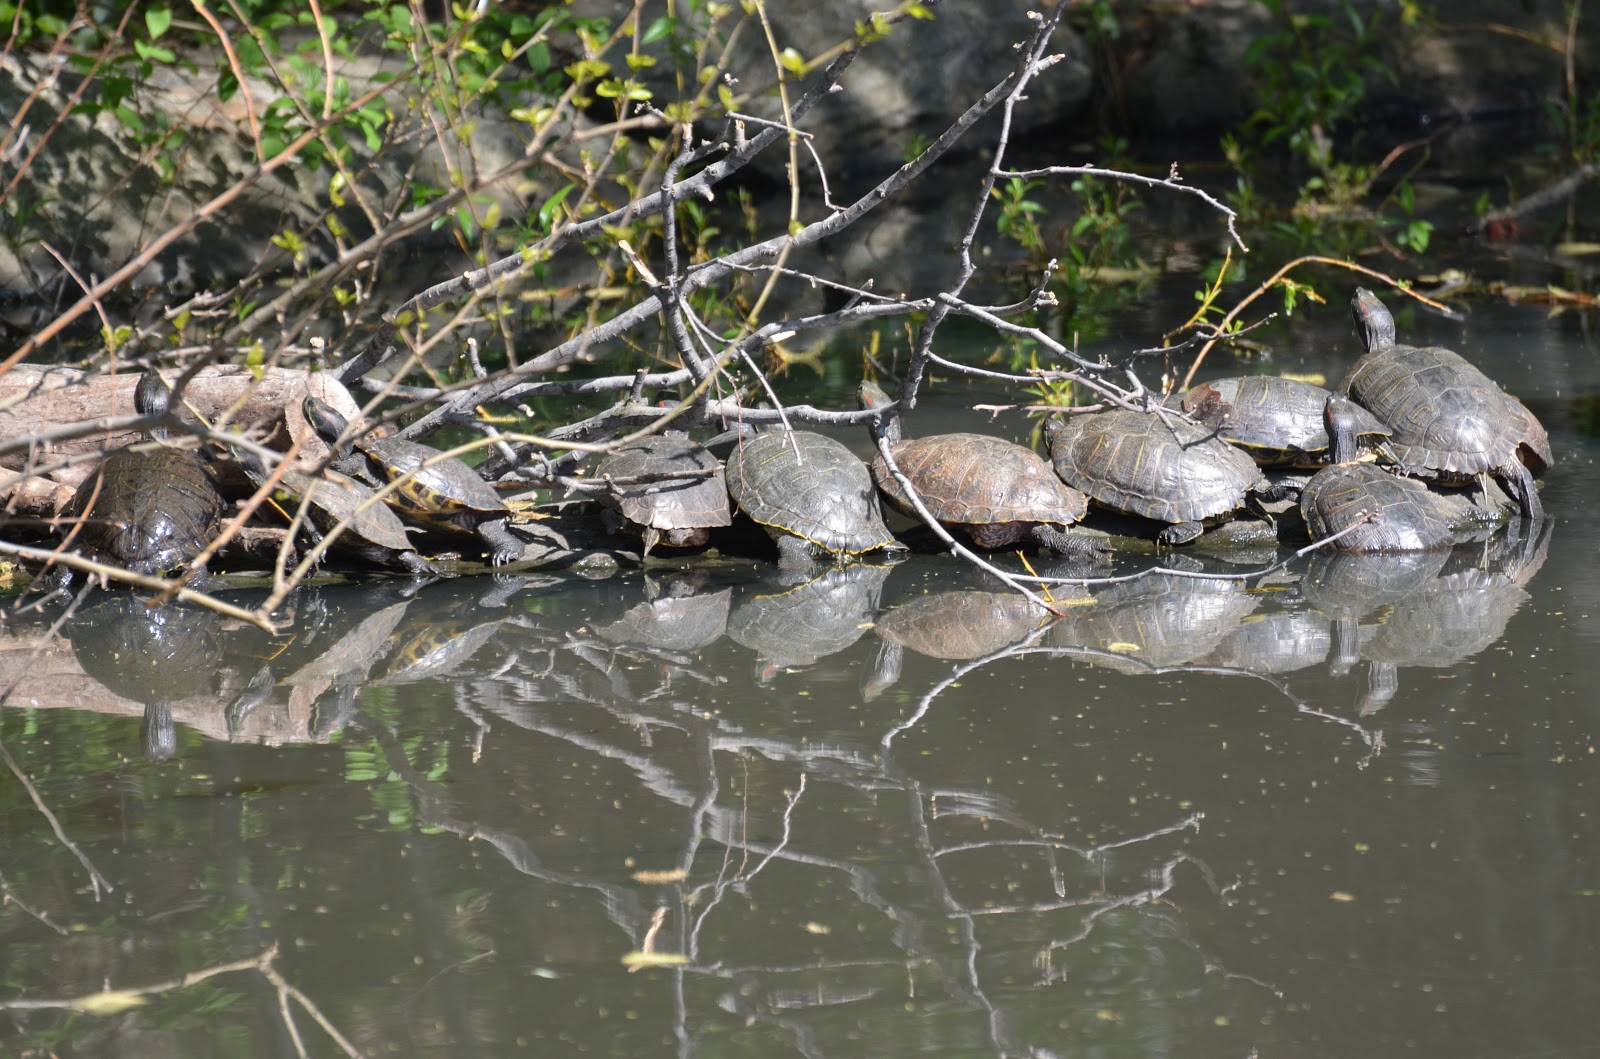 Red eared slider turtle essay - Research paper Sample